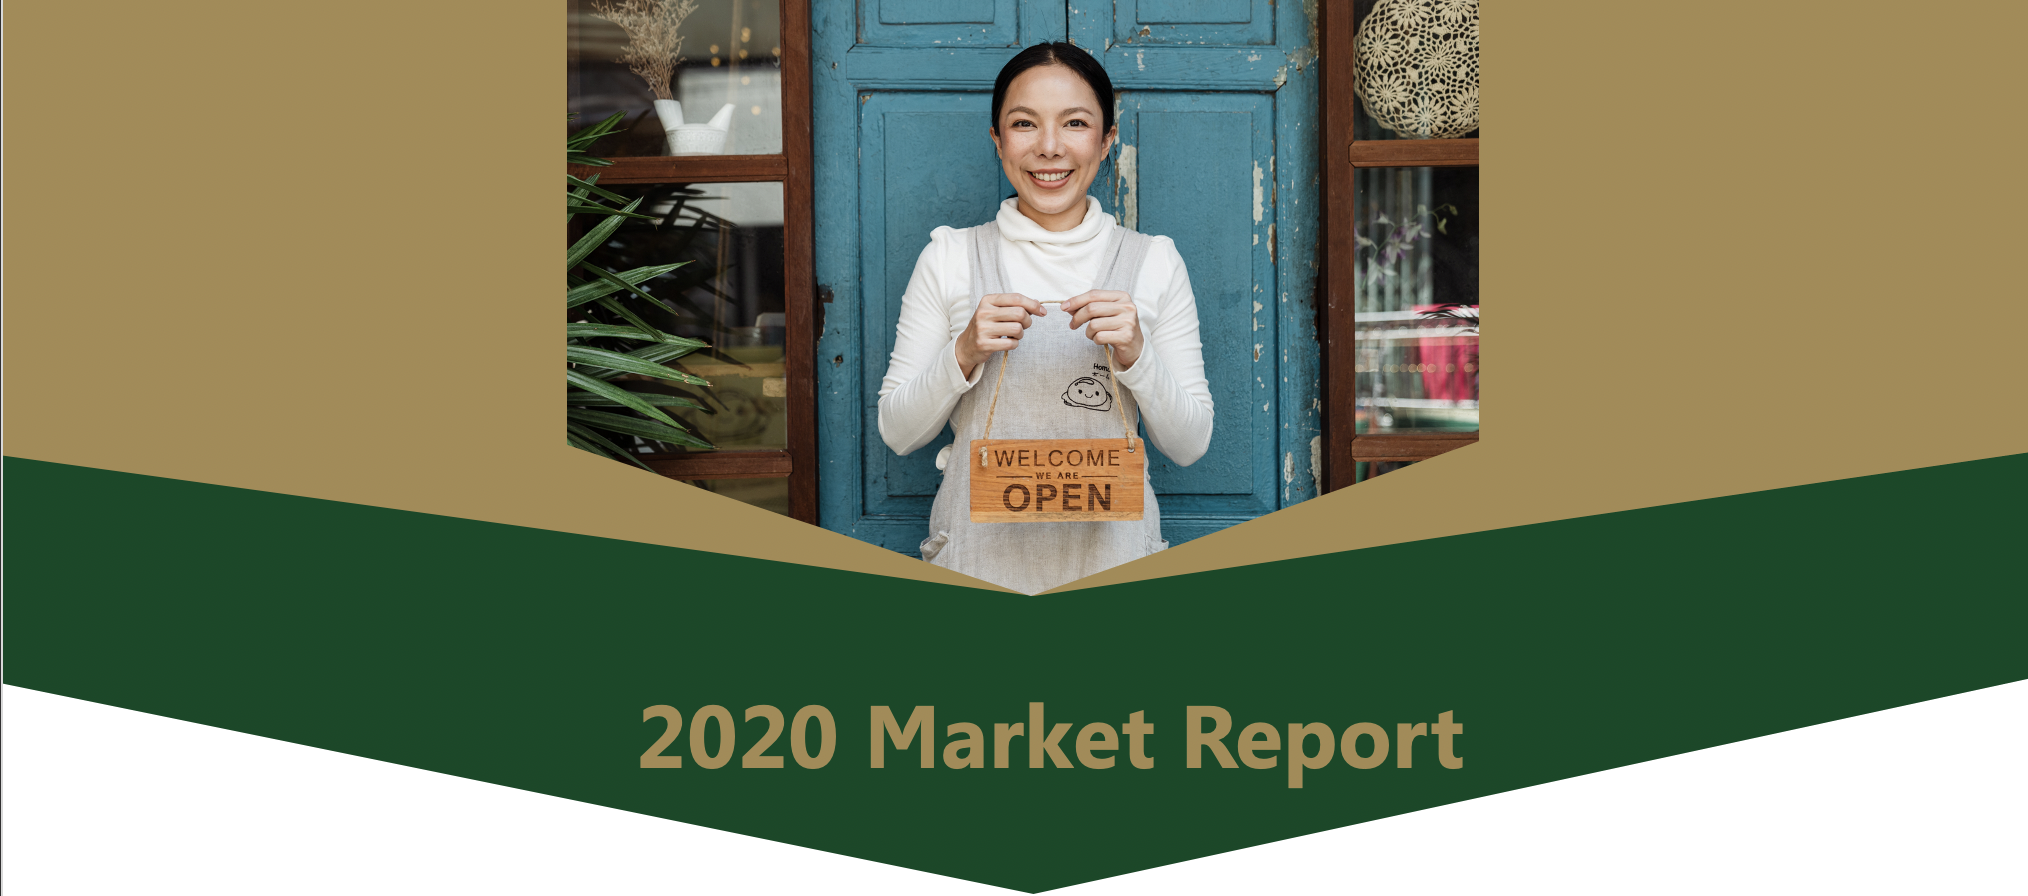 2020 Small Business Market Report